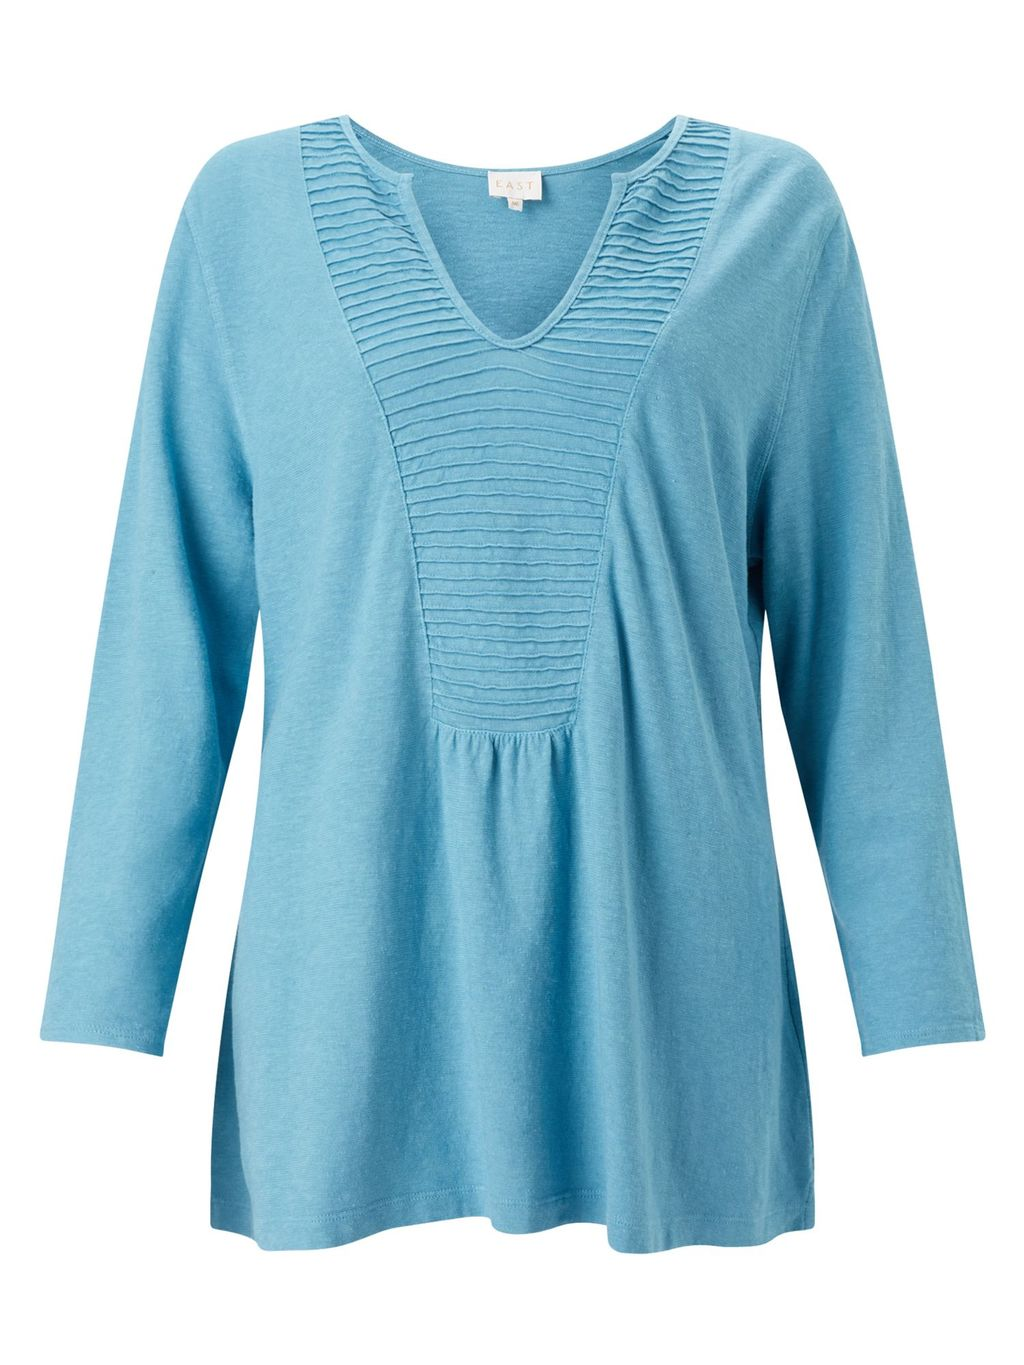 Pintuck Yoke Top, Blue - neckline: v-neck; pattern: plain; predominant colour: pale blue; occasions: casual, creative work; length: standard; style: top; fibres: cotton - mix; fit: loose; sleeve length: 3/4 length; sleeve style: standard; pattern type: fabric; texture group: jersey - stretchy/drapey; season: a/w 2016; wardrobe: highlight